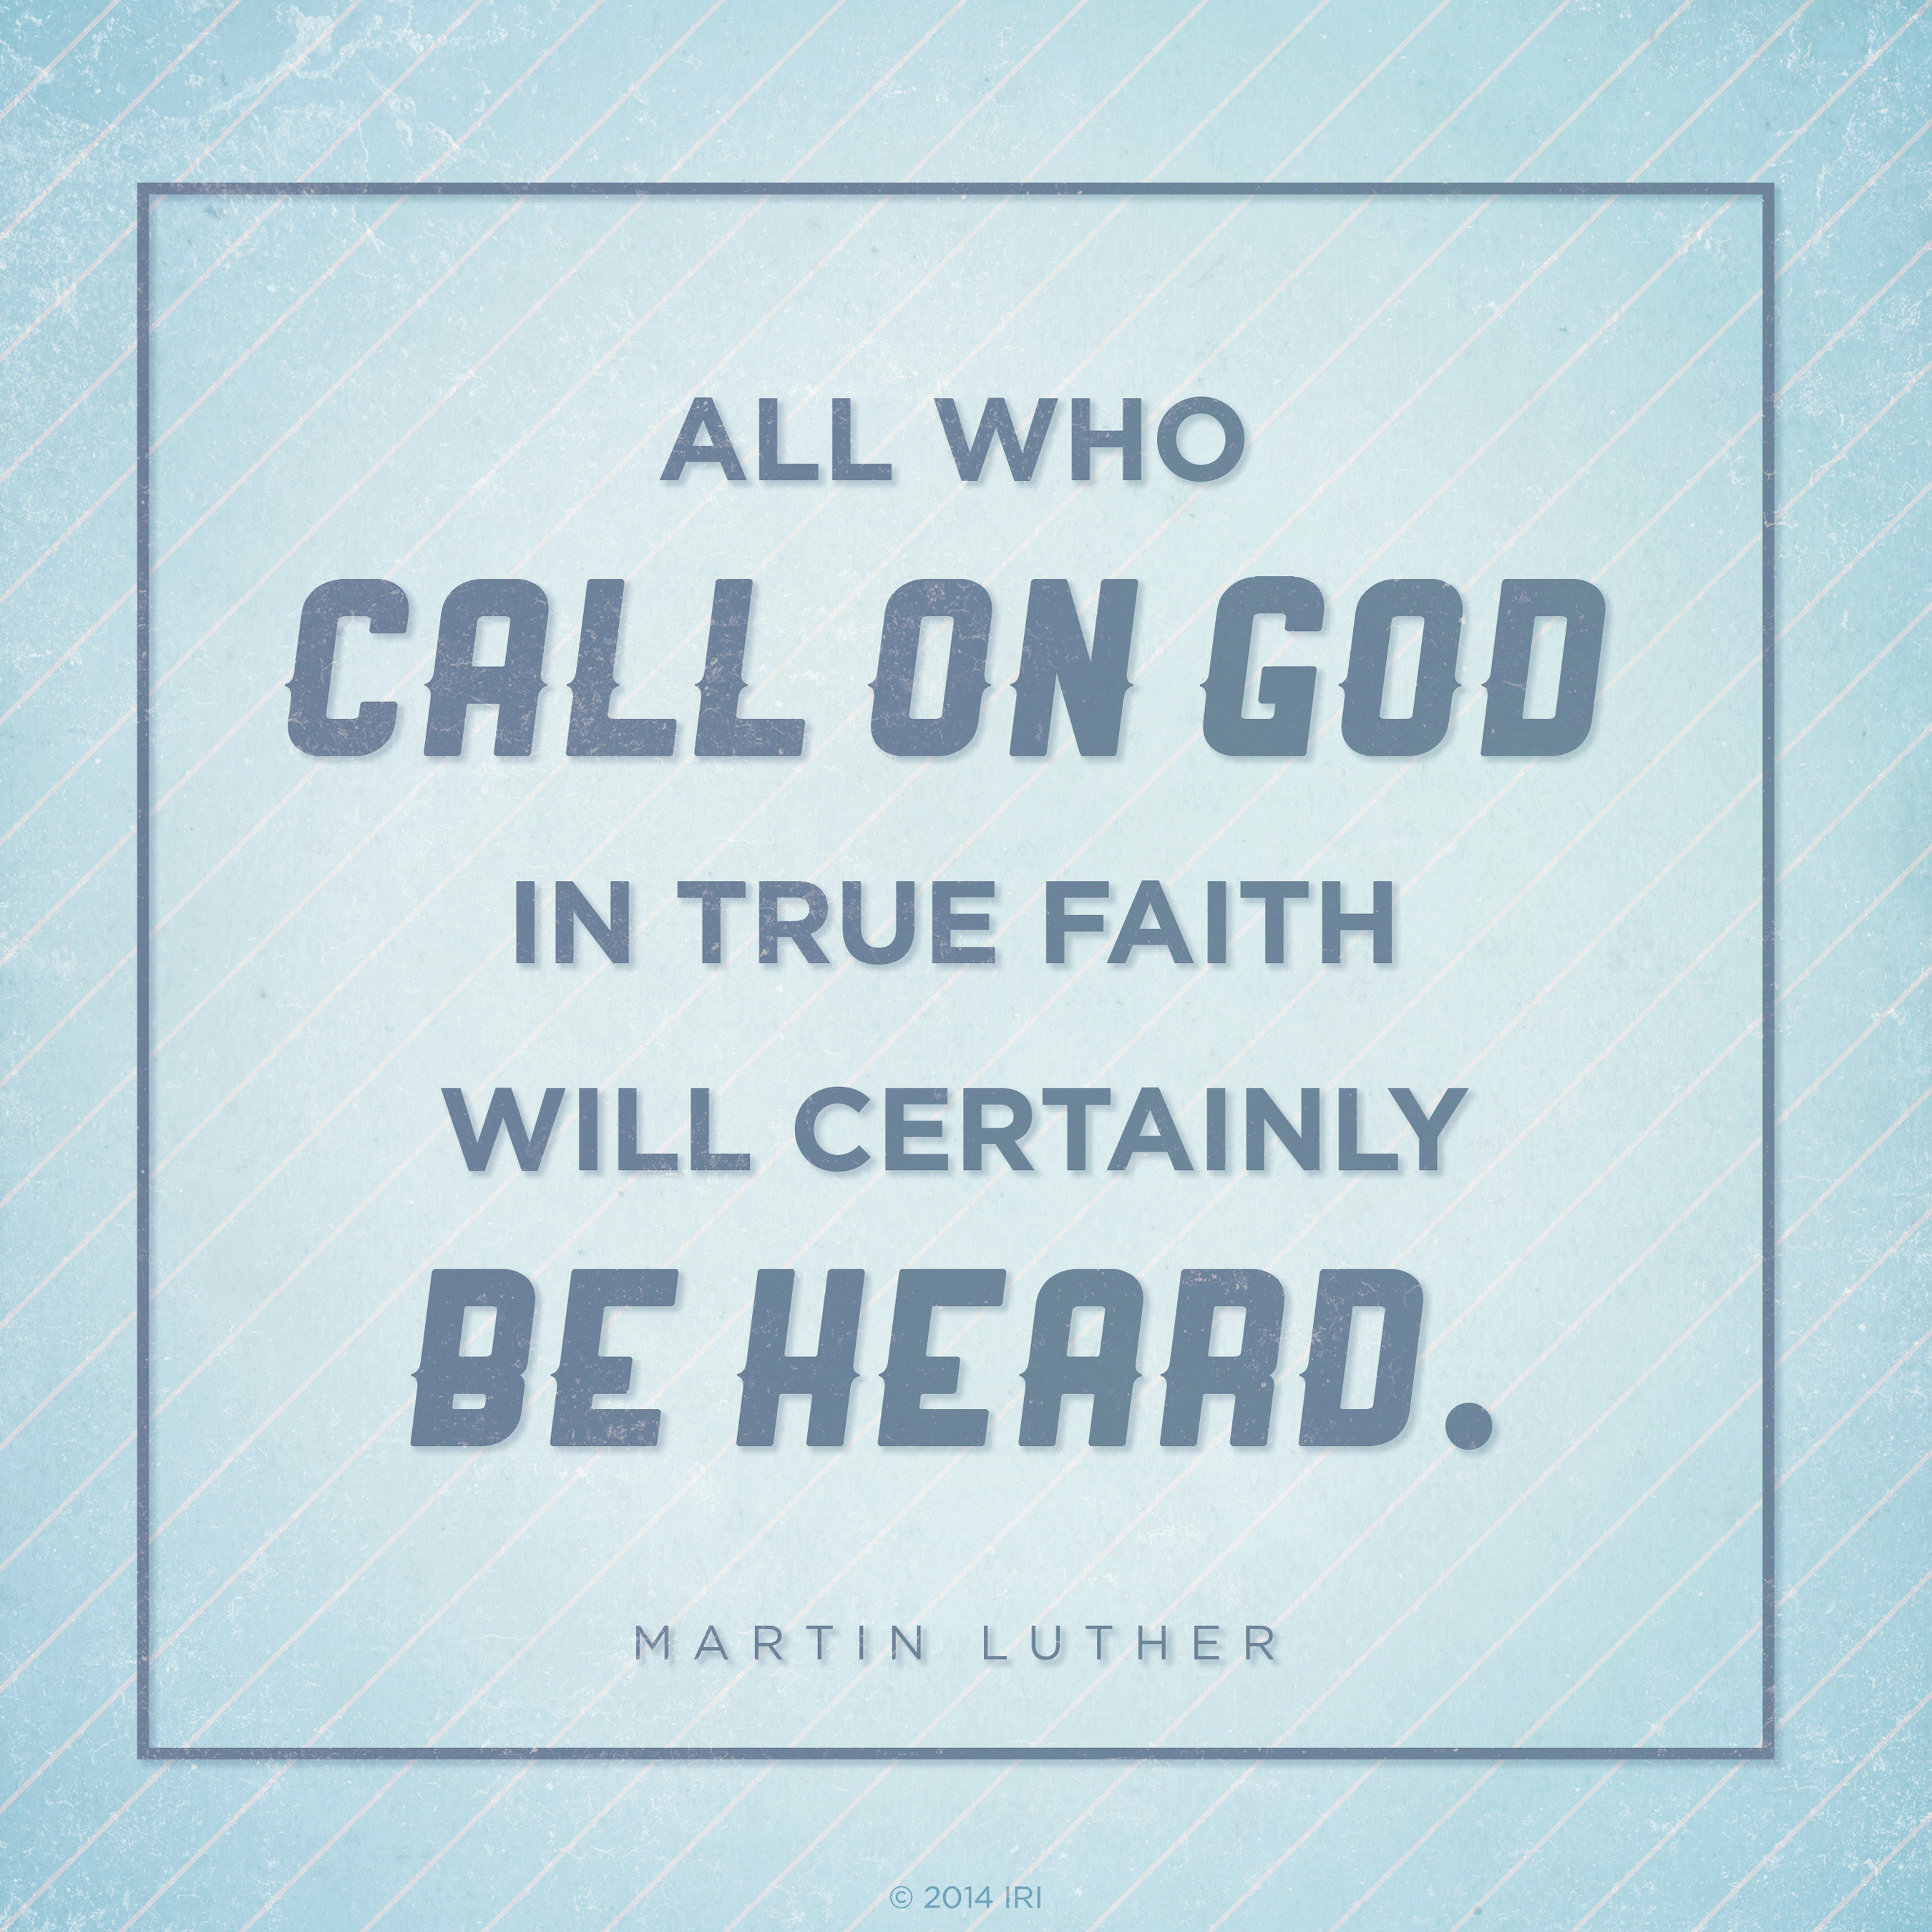 """""""All who call on God in true faith will certainly be heard.""""—Martin Luther"""